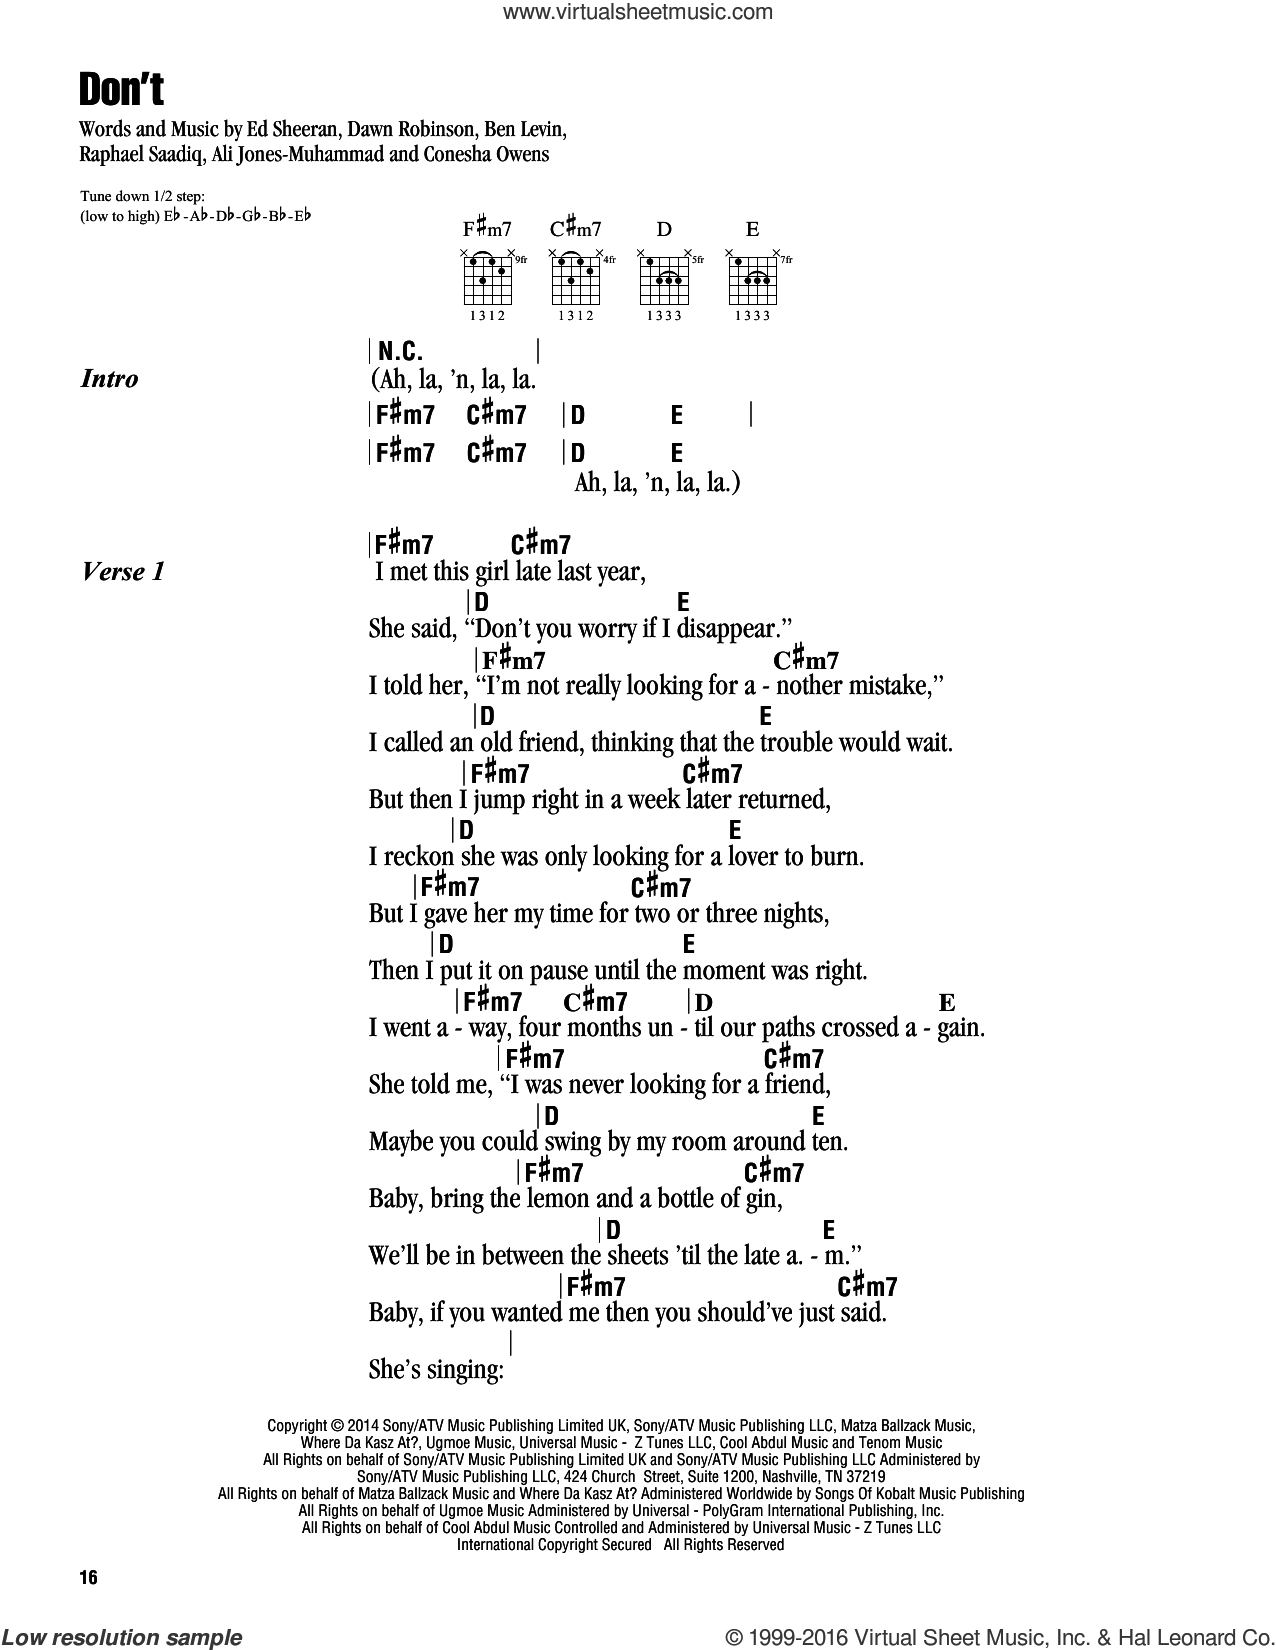 Don't sheet music for guitar (chords) by Ed Sheeran, Ali Jones-Muhammad, Benjamin Levin, Conesha Owens, Dawn Robinson and Raphael Saadiq, intermediate skill level